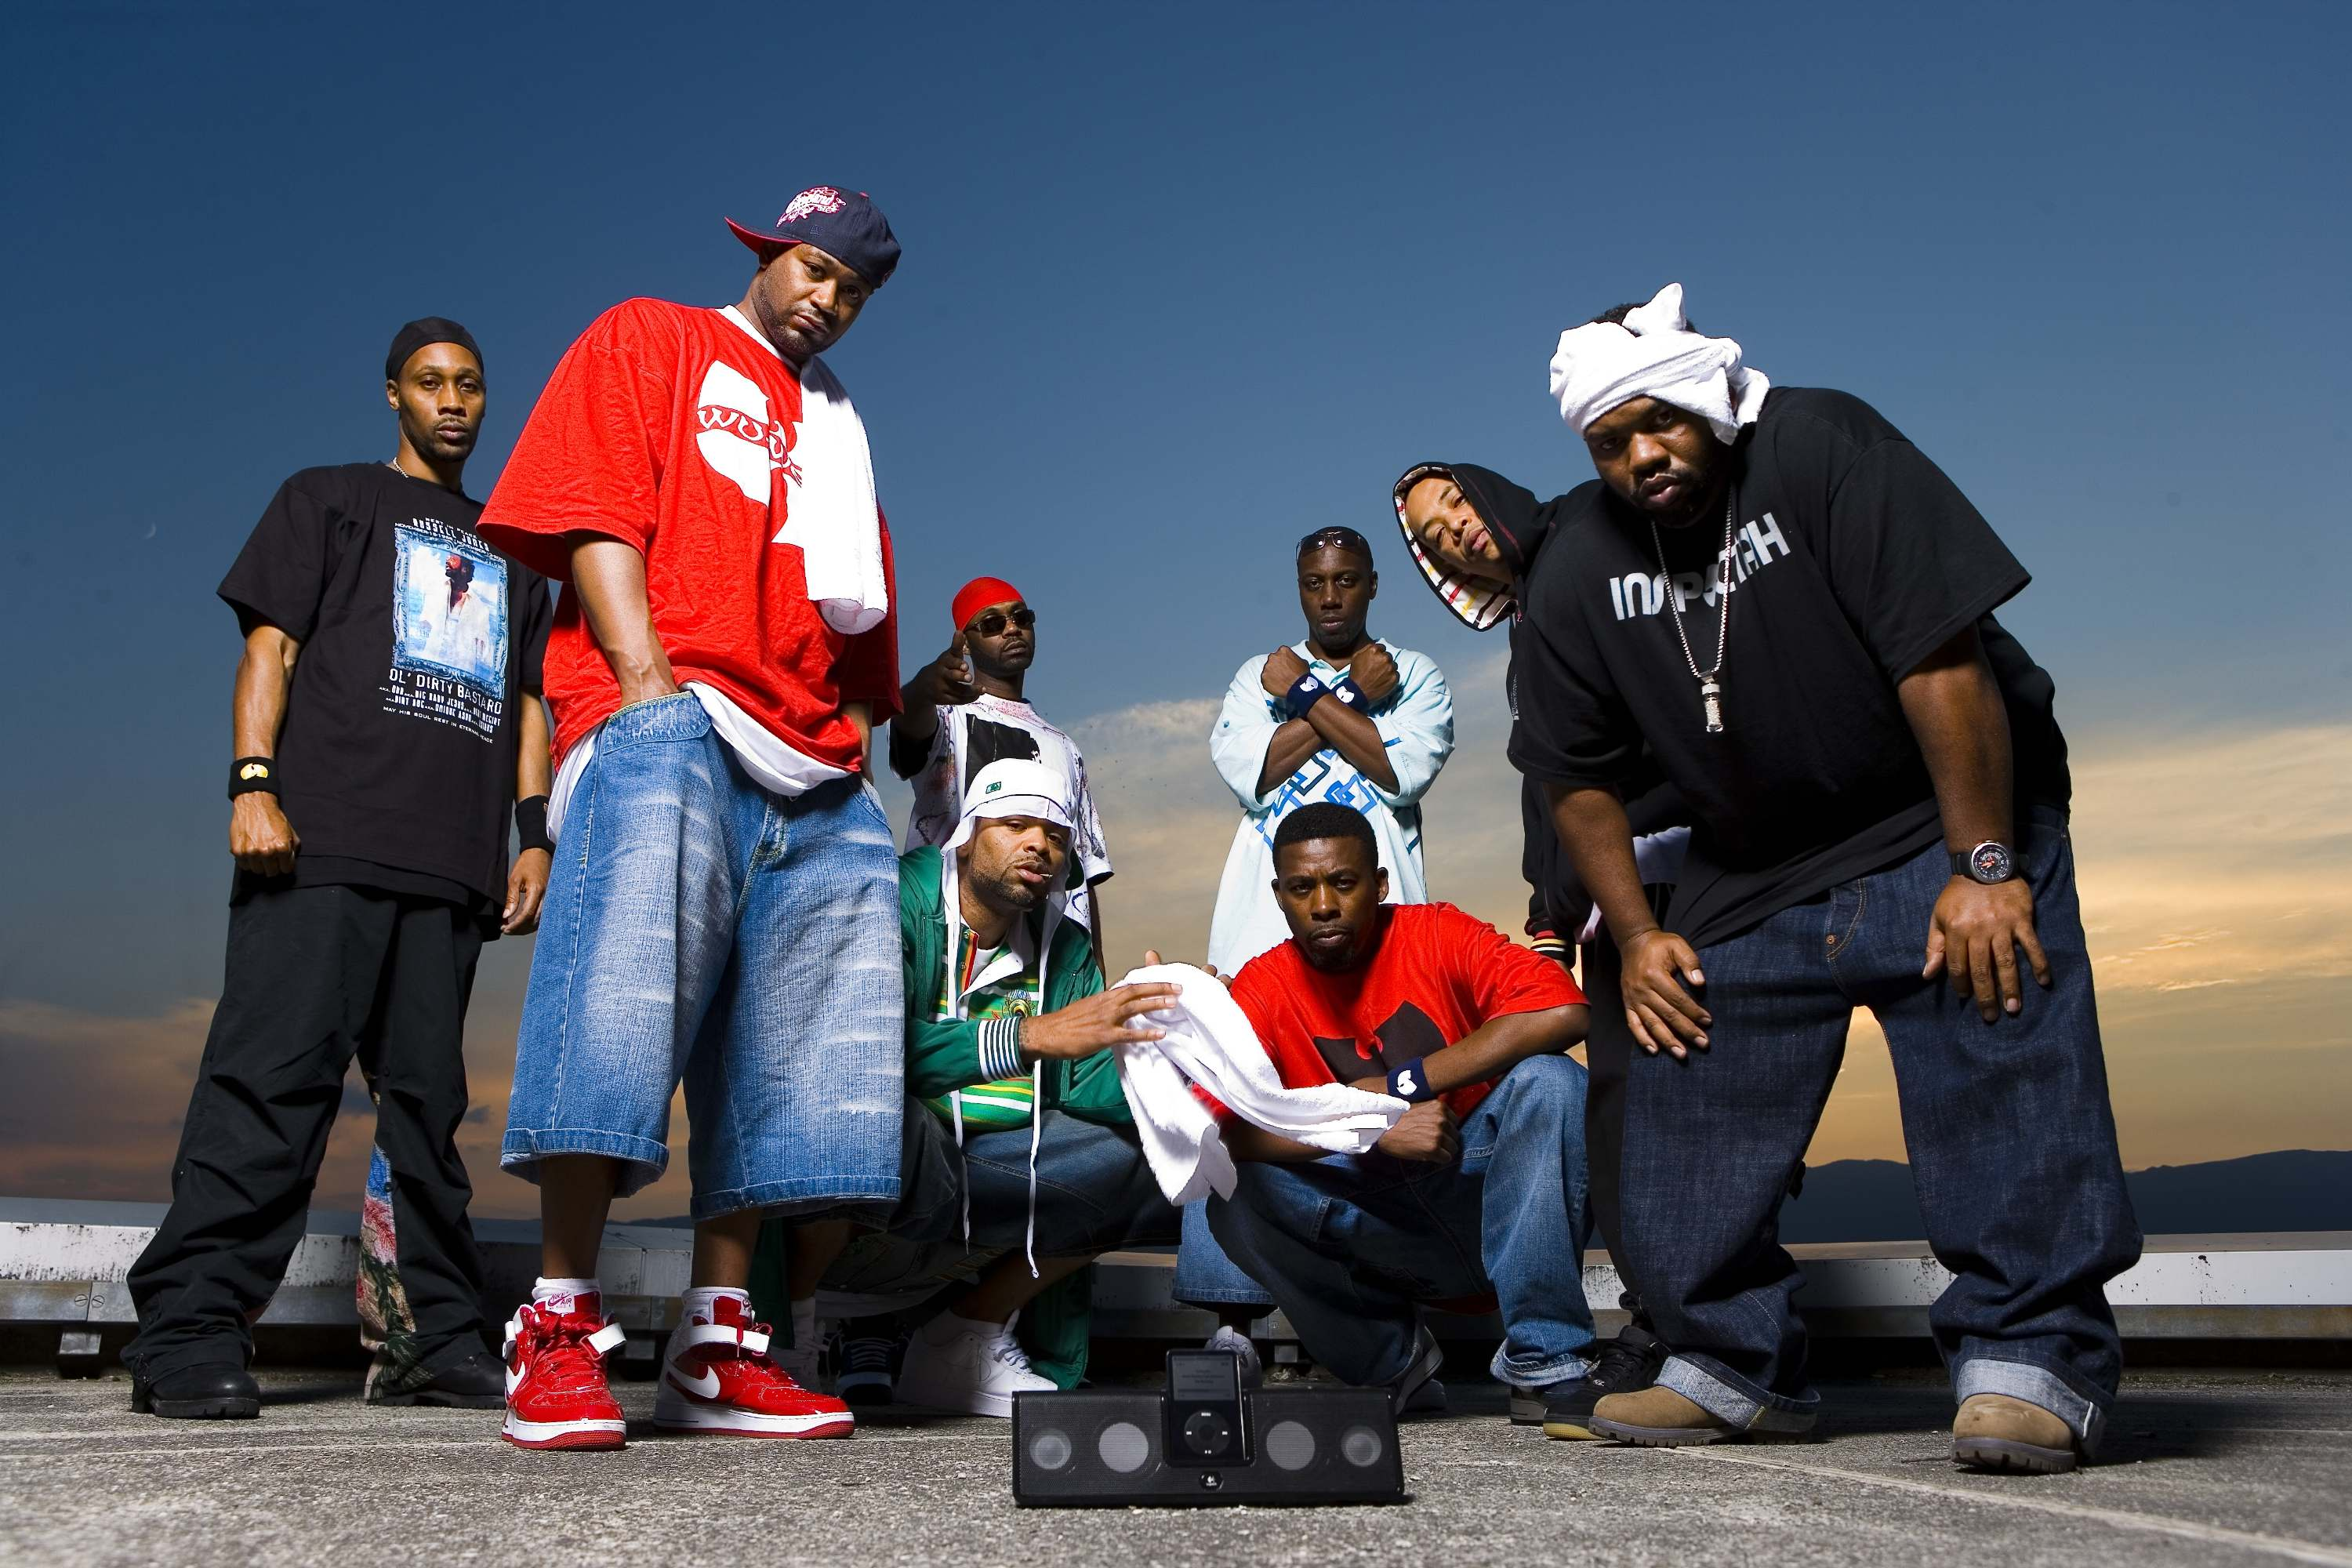 Wu-Tang Clan's Once Upon A Time In Shaolin Album Now Owned By Cryptocurrency Collective After $4 Million Bid